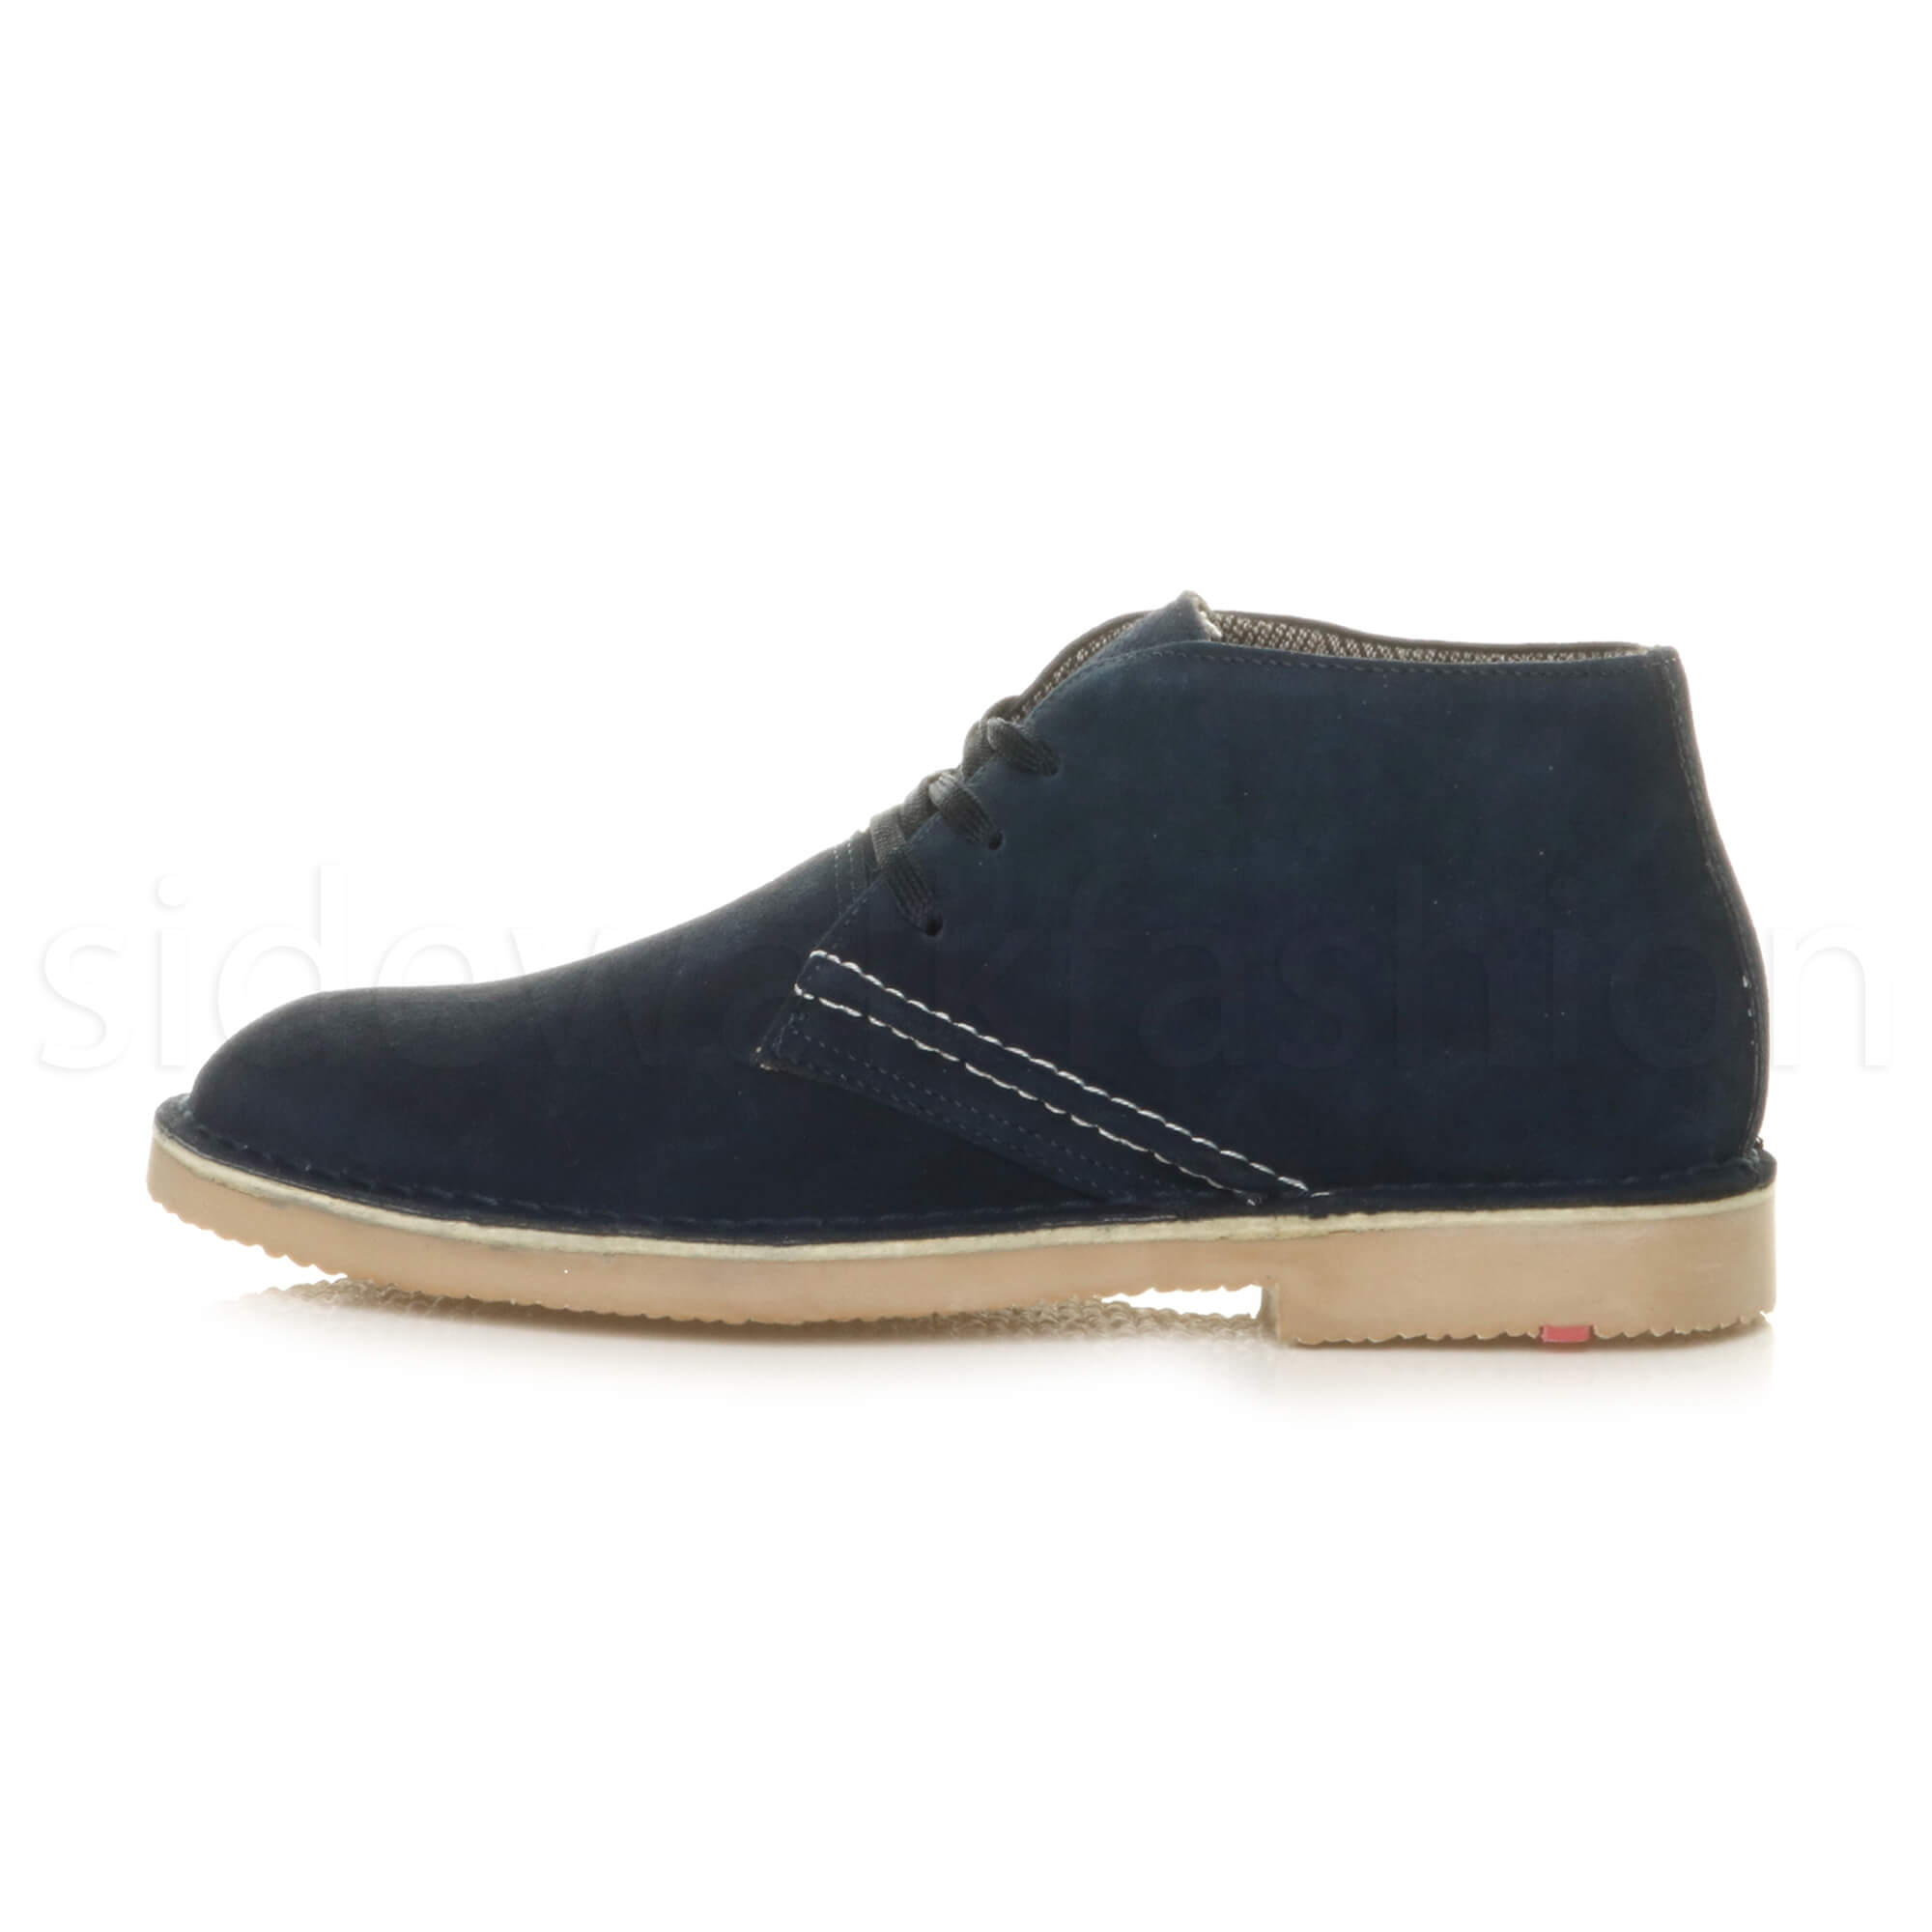 Mens-lace-up-rubber-sole-suede-ankle-chukka-desert-boots-classic-shoes-size thumbnail 25